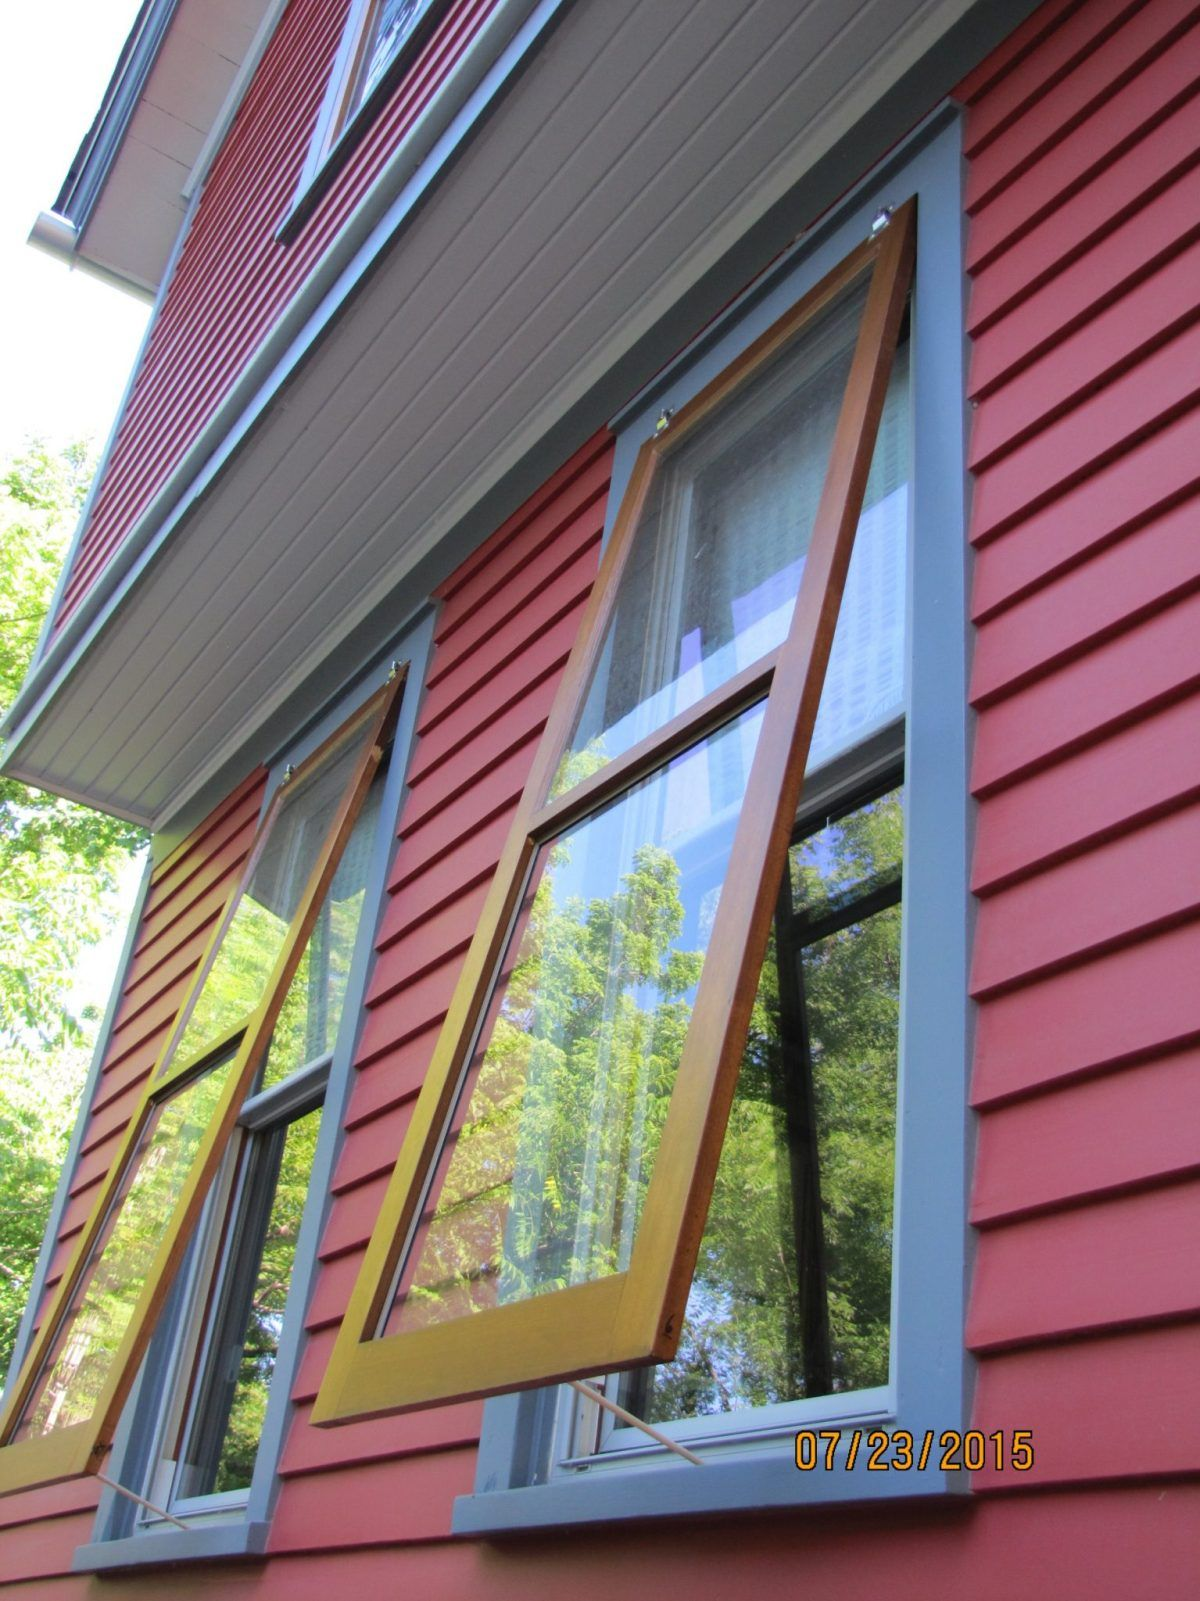 The Best Wood Storm Window Really My Old House Fix Interior Storm Windows Windows Exterior Barn Windows